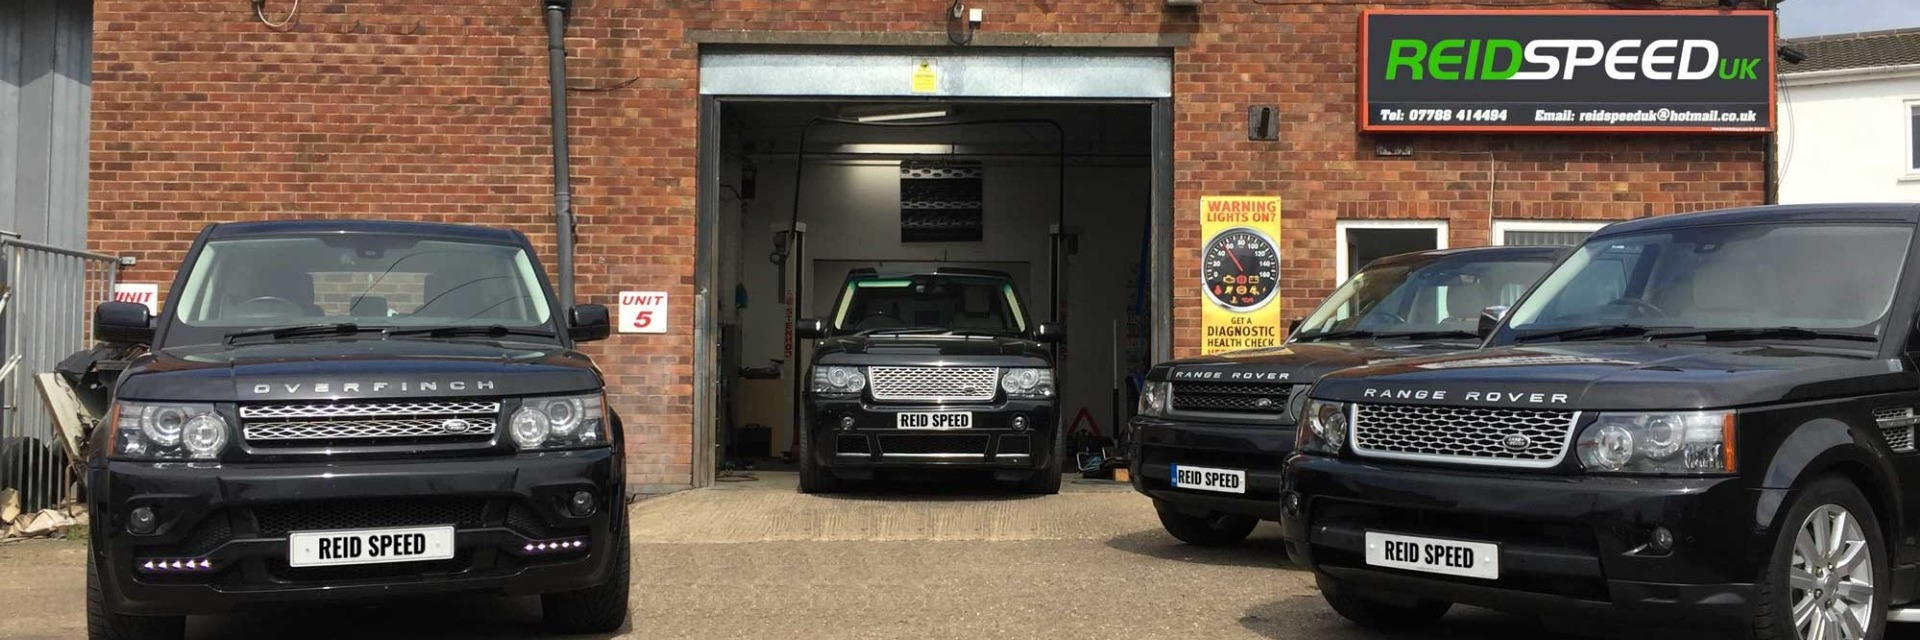 Reid Speed Land Rover Specialists